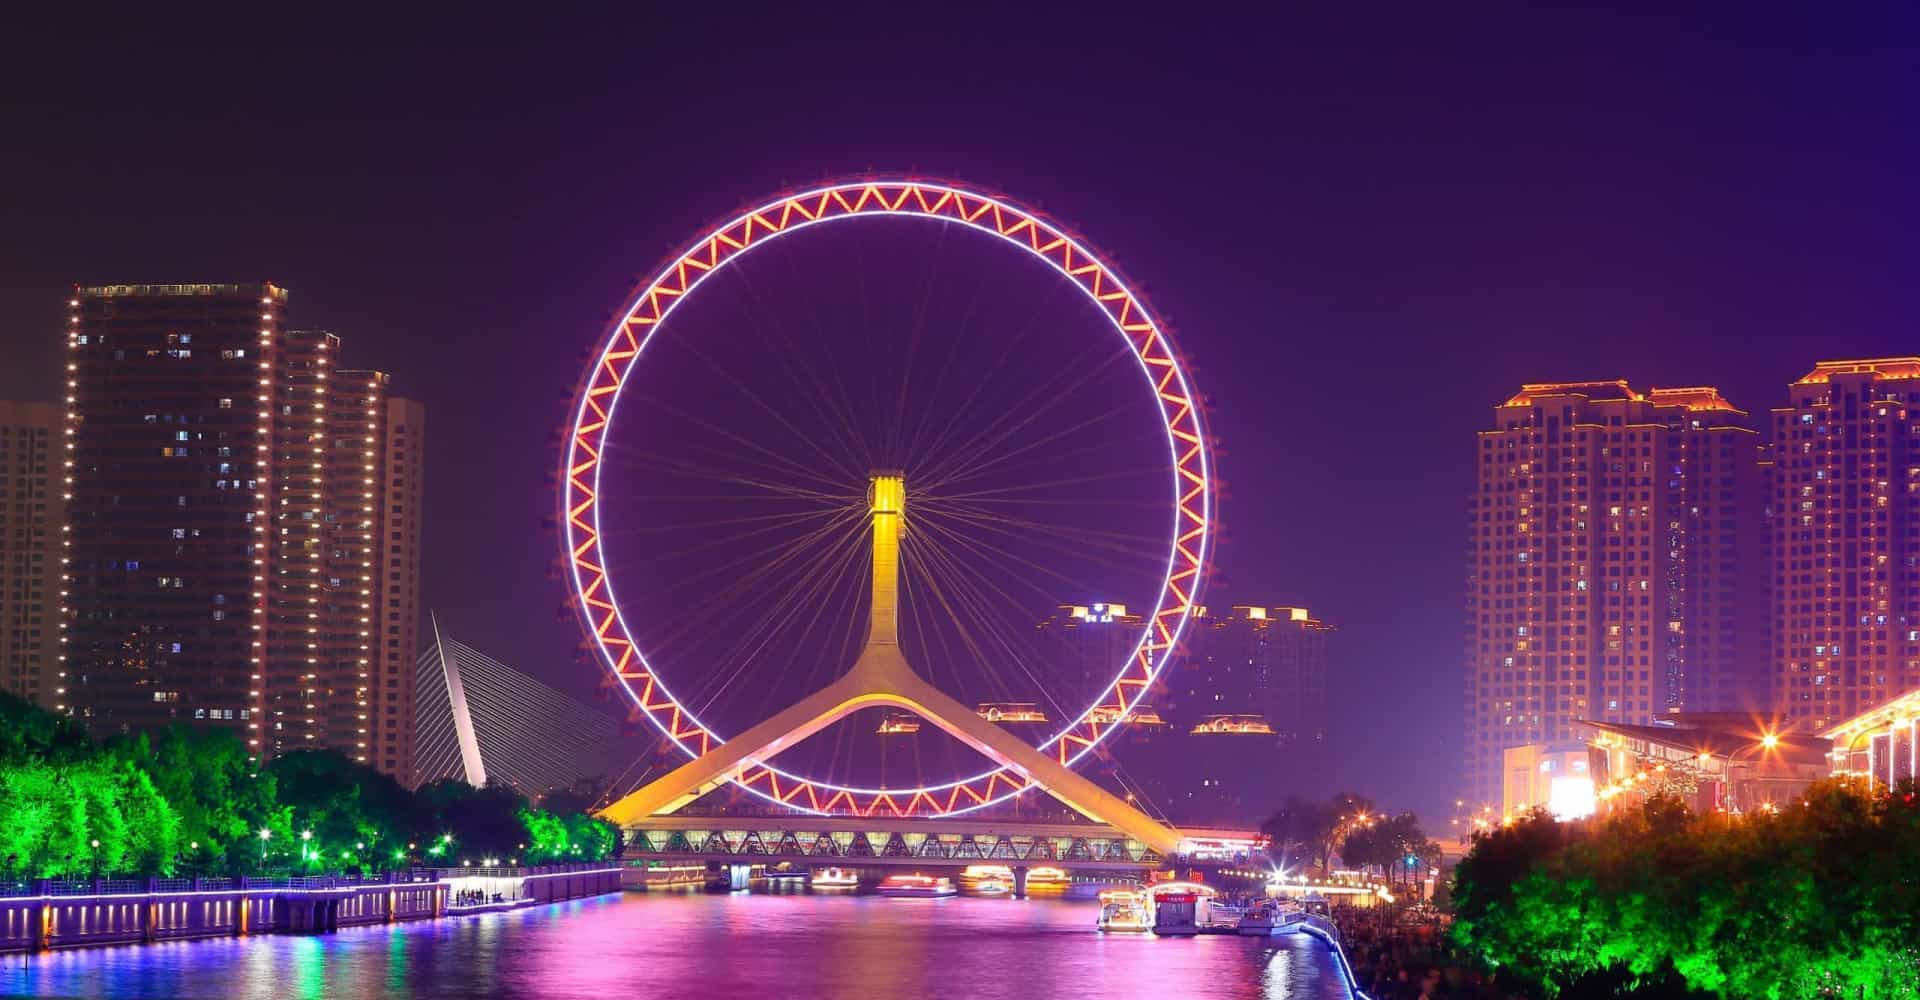 The world's best giant Ferris wheels